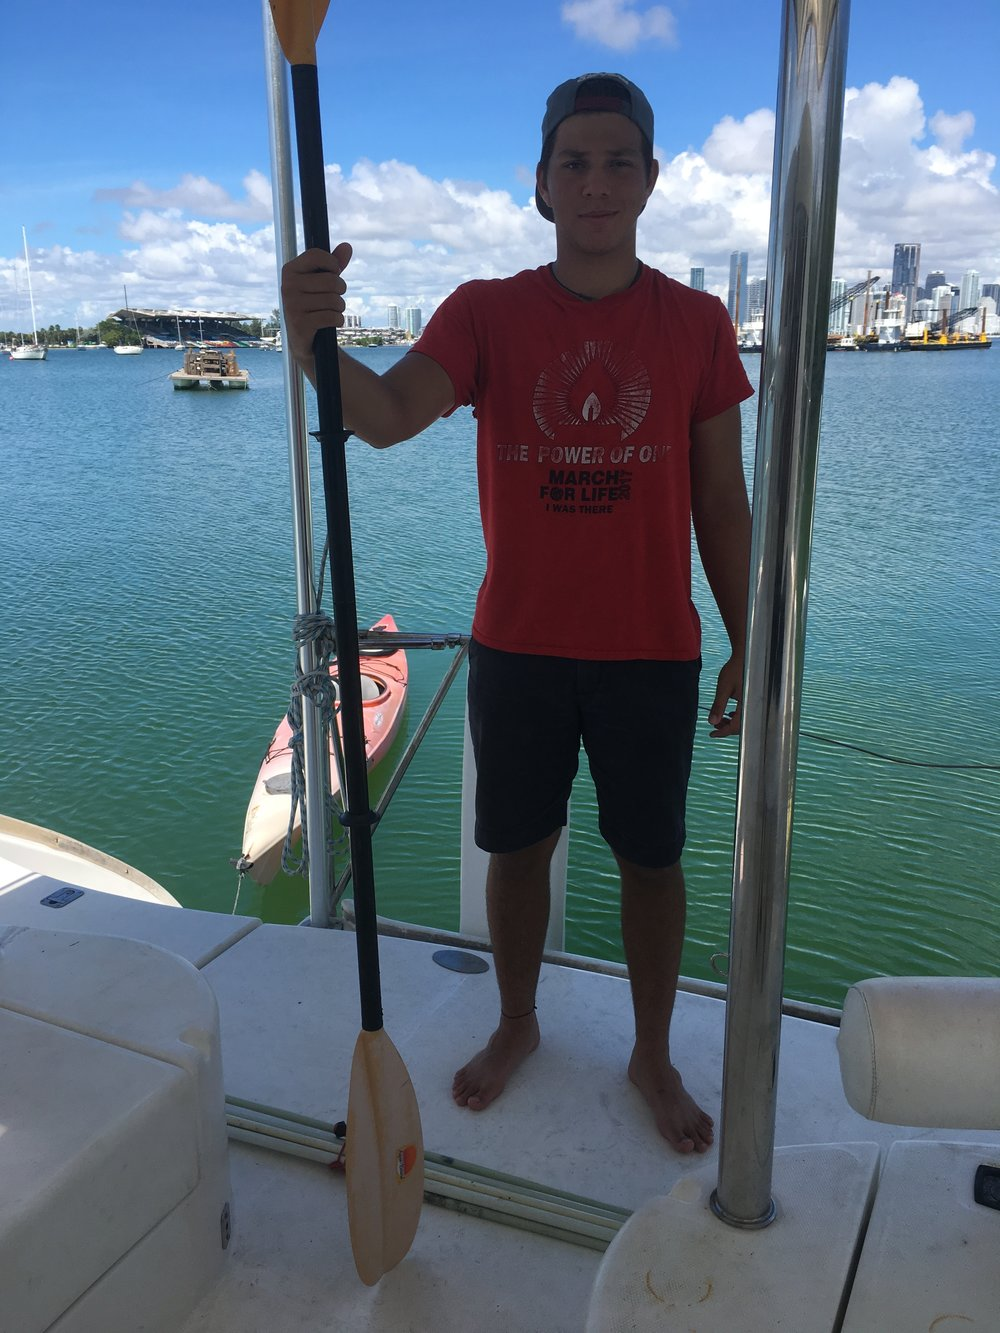 With Miami in the background, Cristian R. poses with his kayak paddle staff.